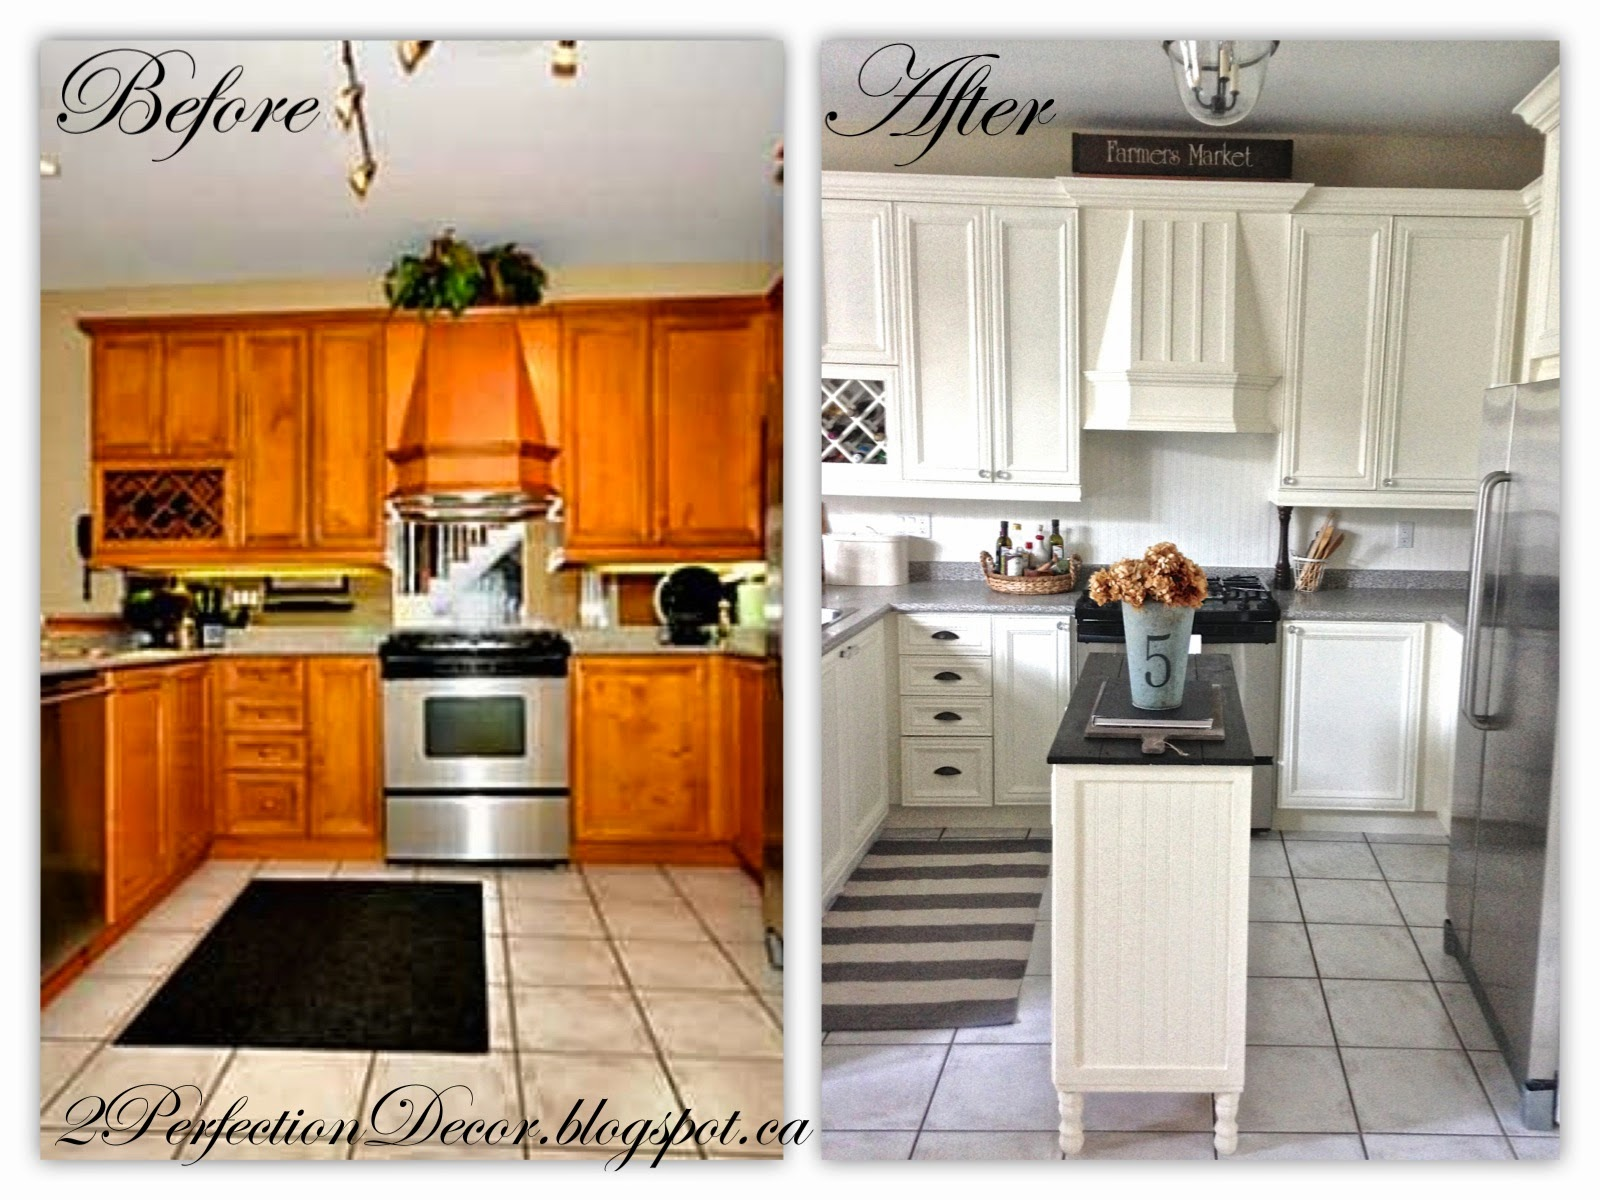 Kitchen Cabinets Painted Linen White 2perfection decor: september 2014